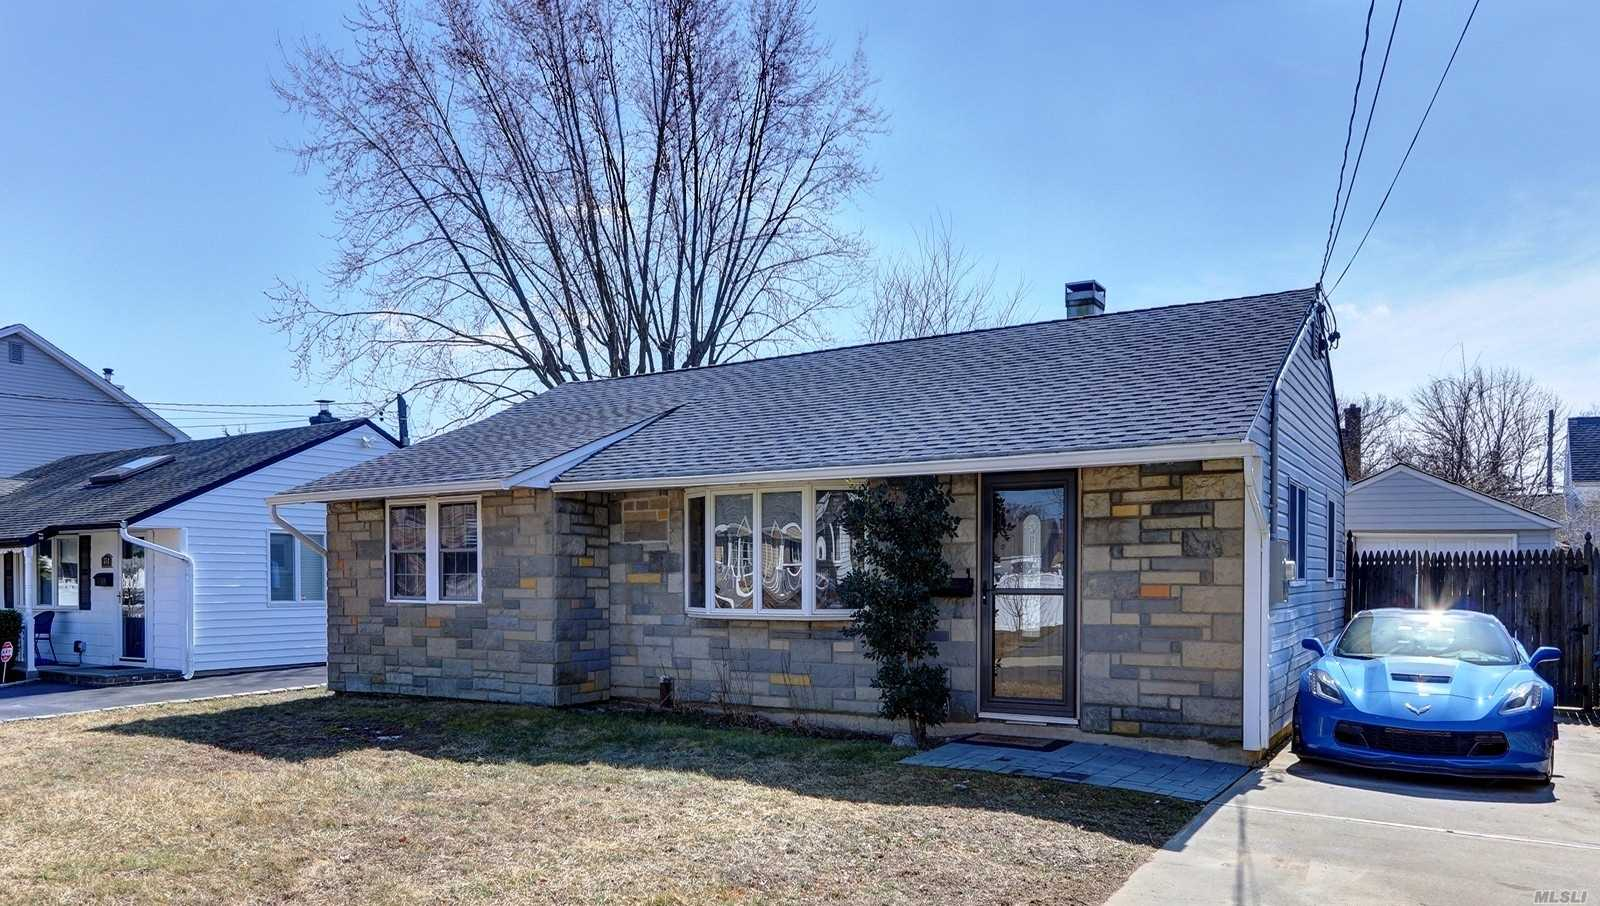 Adorable newly renovated Stone Front Ranch with nice low taxes of $6, 937 with star discount. Over sized Detached Garage and plenty more storage in attic. New kitchen with sub zero Refrigerator, Granite Counter Top and Stainless Steel Appliances. New full Bath with Marble Tile. All new Flooring throughout. Central Air conditioning. New Washer/Dryer on Main Level. Mostly Anderson Windows. Roof 7 years young. New furnace. Rear Patio with Fenced yard. Electric Approx $120, Heating Approx $225